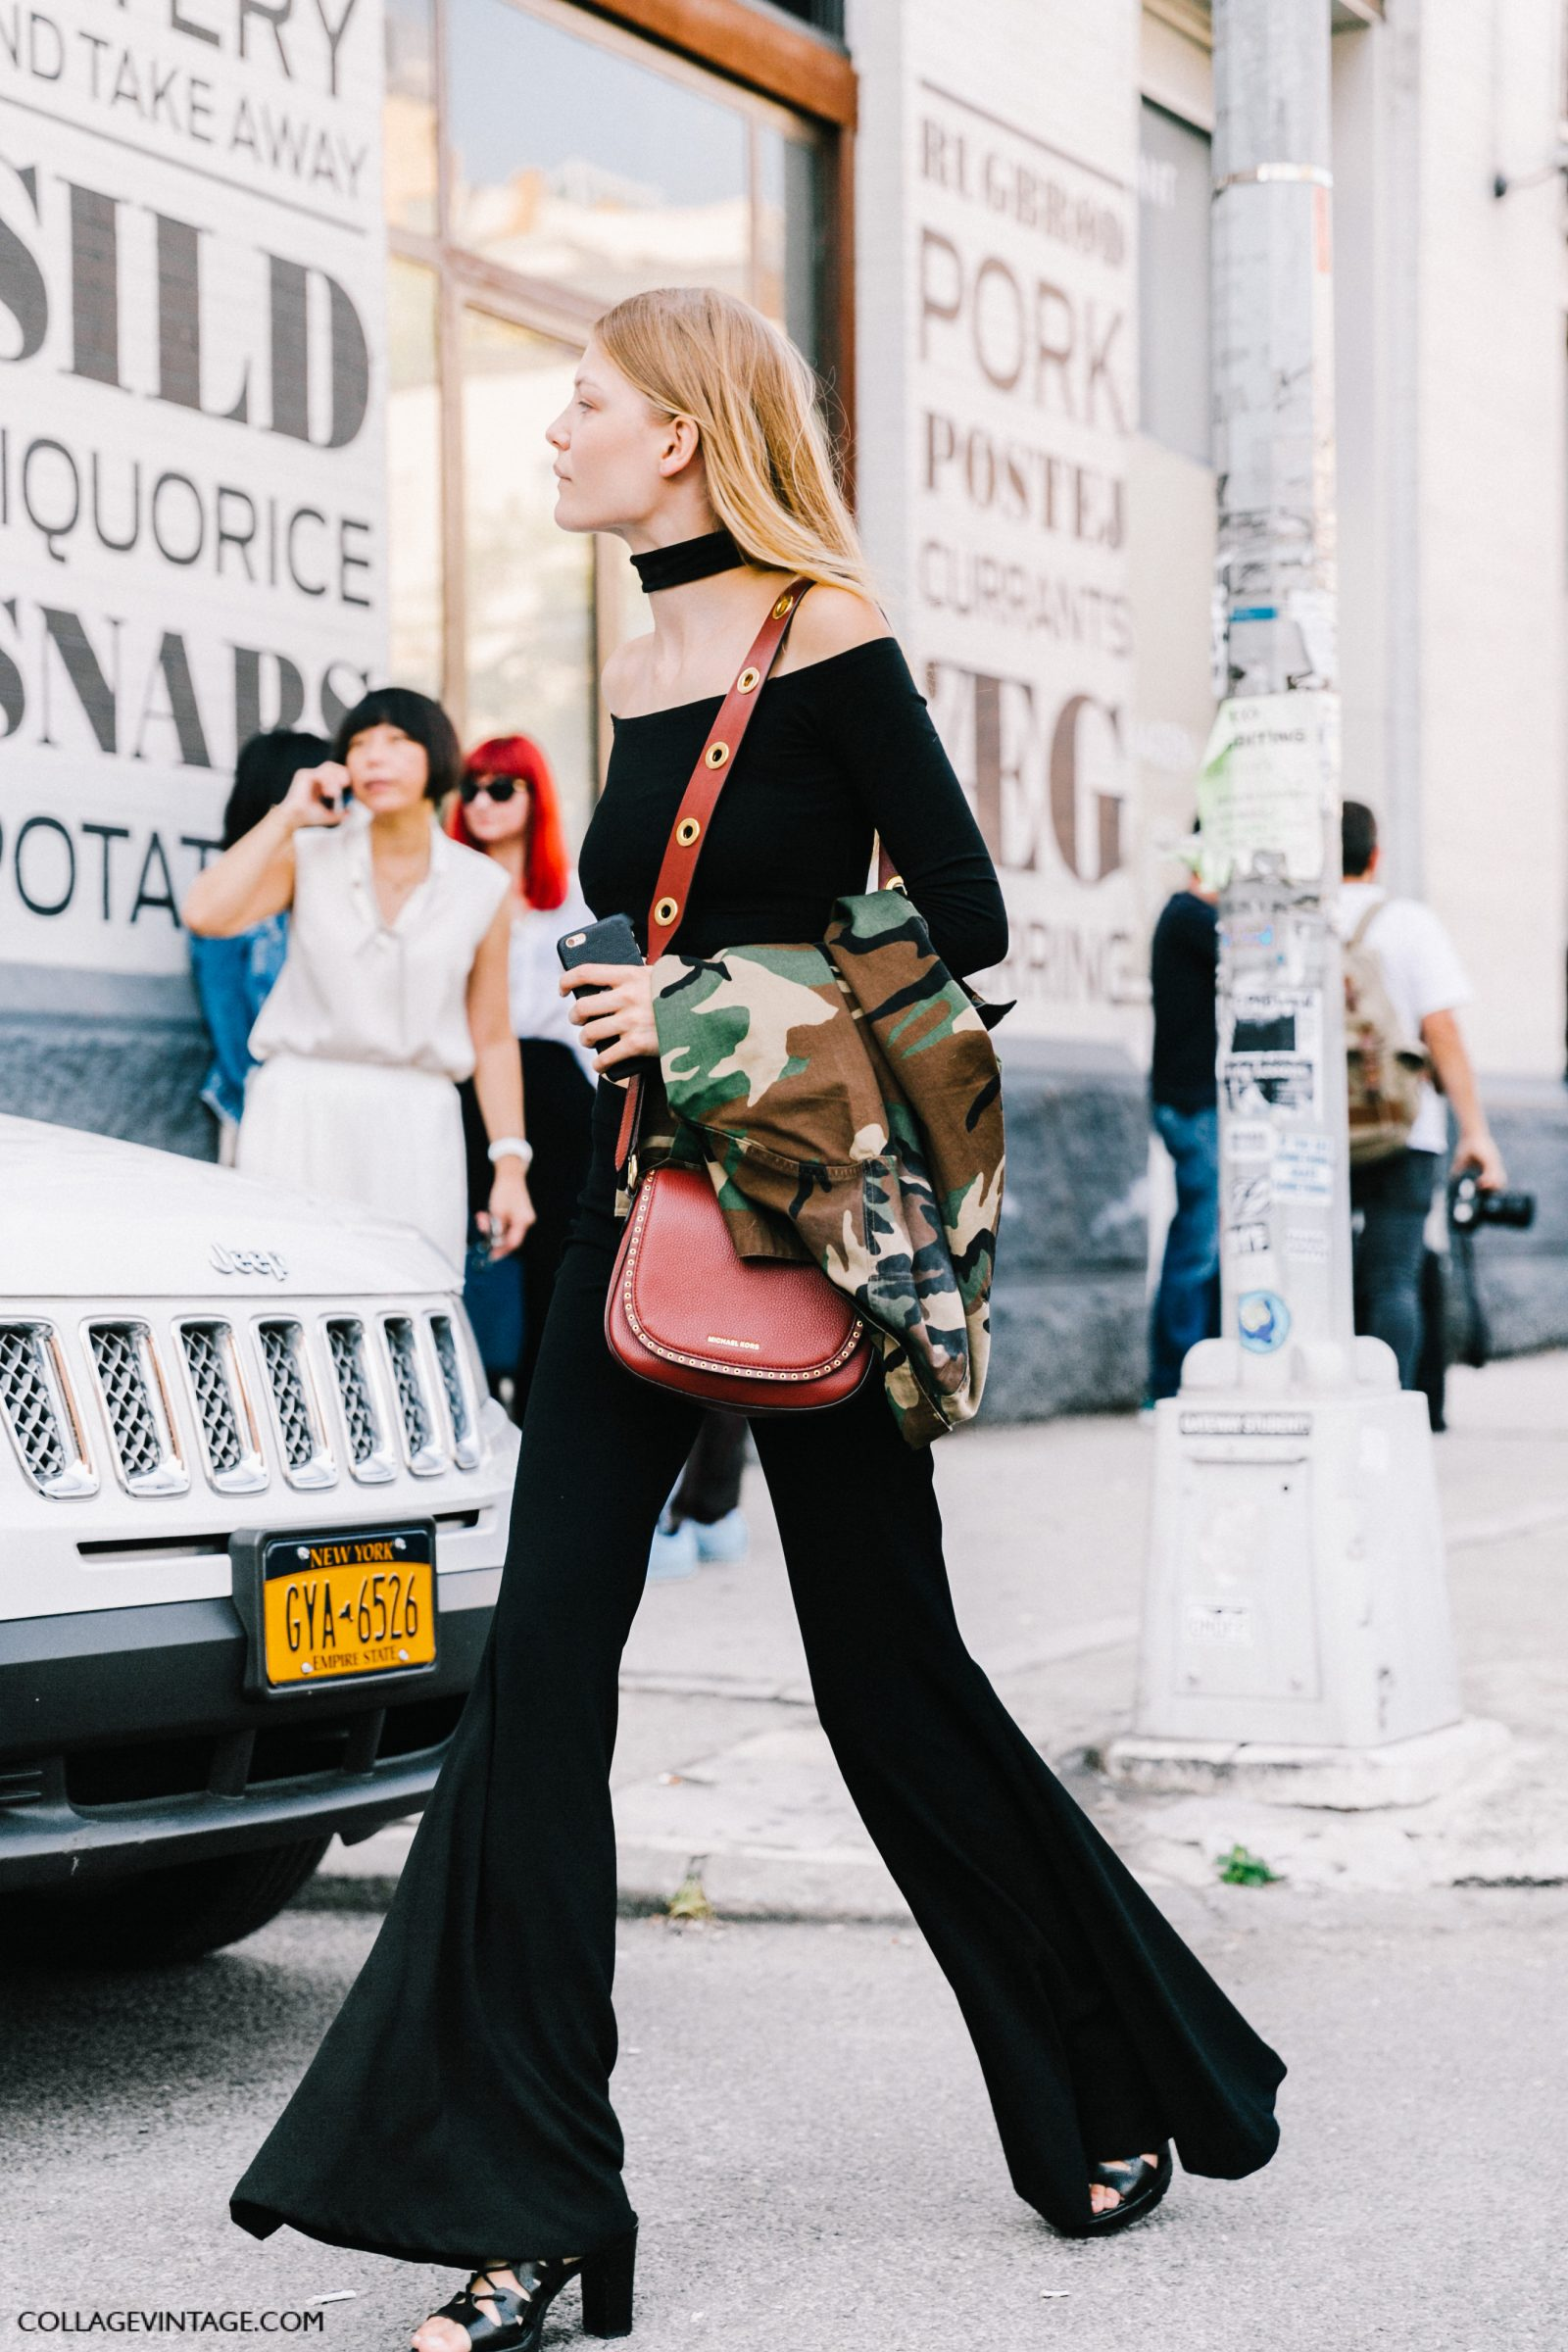 nyfw-new_york_fashion_week_ss17-street_style-outfits-collage_vintage-vintage-del_pozo-michael_kors-hugo_boss-85